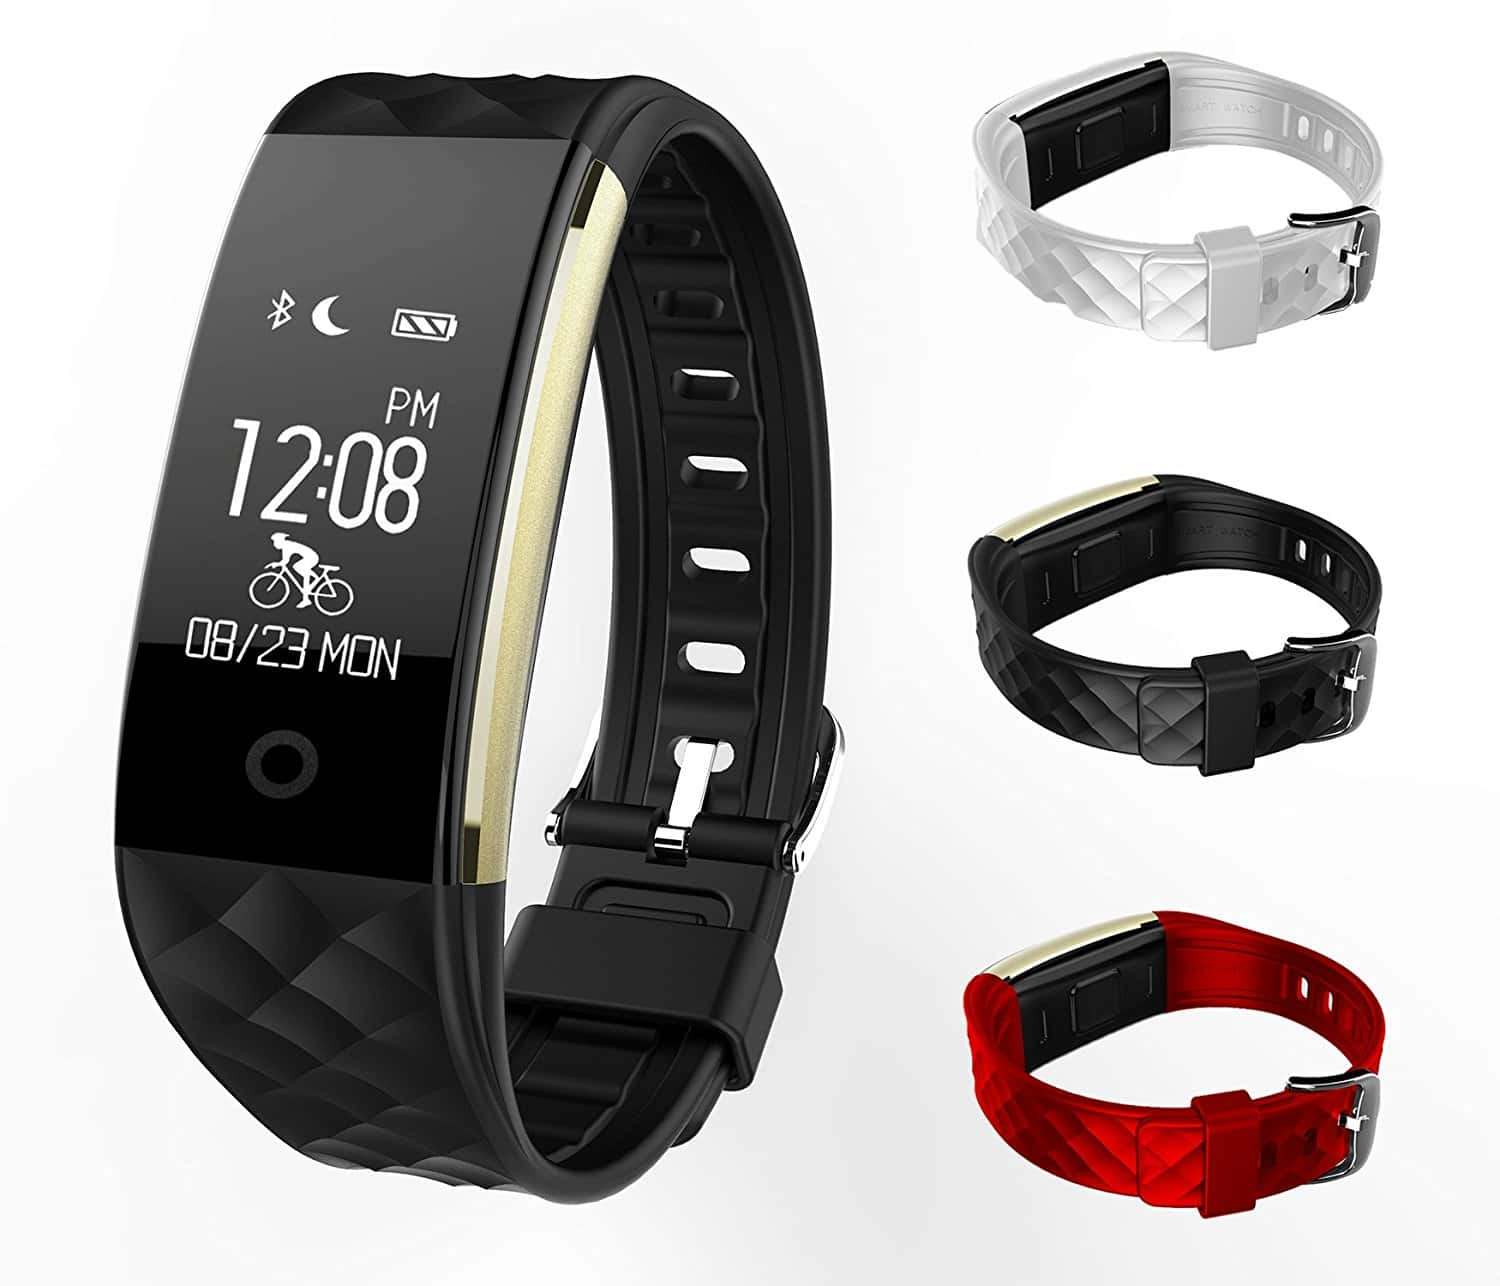 fitness black com tracker wireless watches sleep with monitoring track bluetooth plus amazon outdoors pedometer dp calories and juboury sports